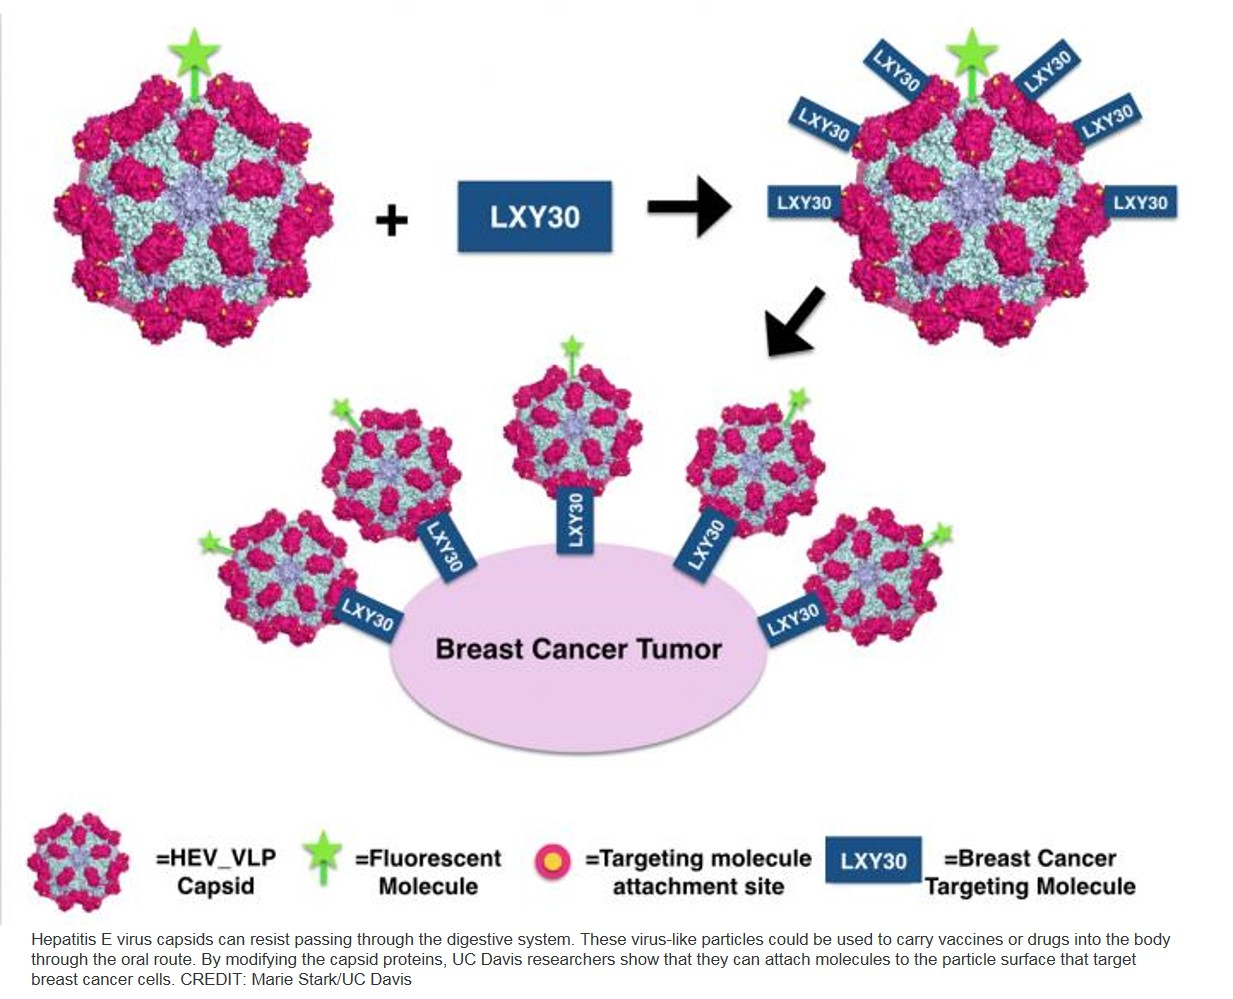 Hepatitis virus-like particles as potential cancer treatment